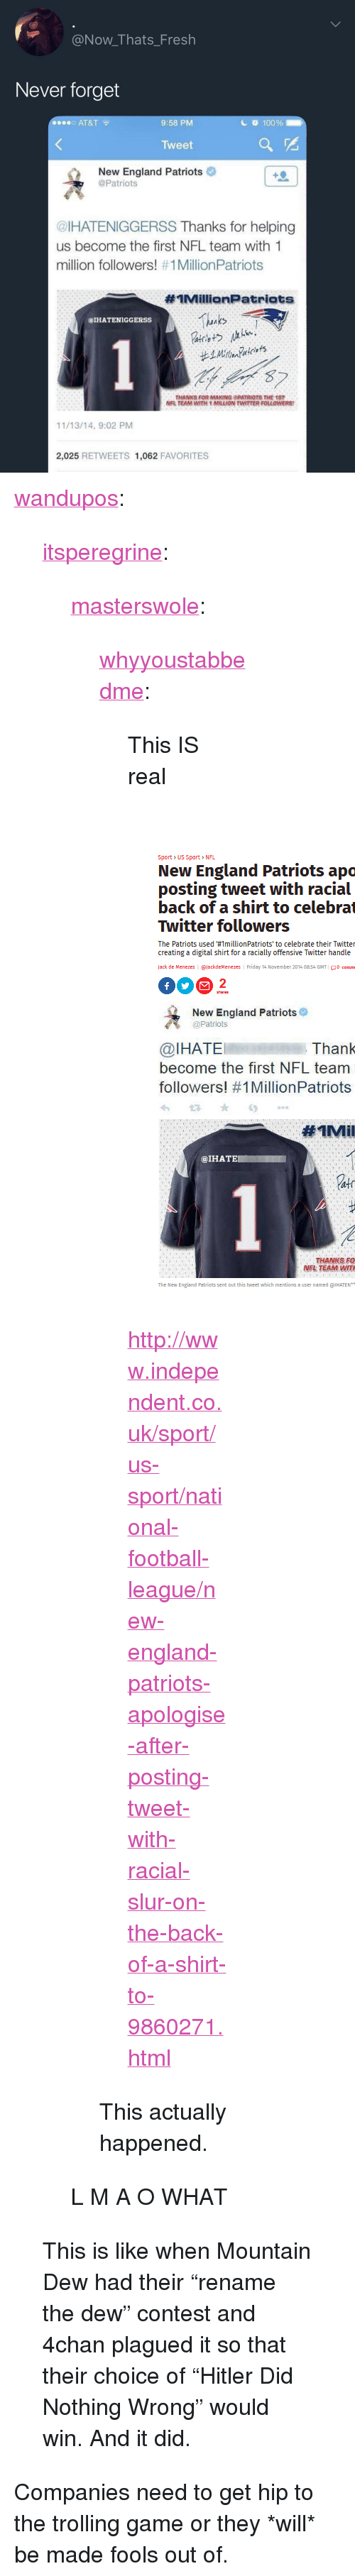 "4chan, Anaconda, and England: @Now_Thats_Fresh  Never forget  o AT&T  9:58 PM  c 100%  Tweet  New England Patriots  @Patriots  @IHATENIGGERSS Thanks for helping  us become the first NFL team with 1  million followers! #1 MillionPatriots  #IMillionPatriats  Thinks  @IHATENIGGERSS  THANKS FOR MAKING PATRIOTS THE 1ST  NFL TEAM WITH 1 MILLION TWITTER FOLLOWERS  11/13/14, 9:02 PM  2,025 RETWEETS 1,062 FAVORITES <p><a href=""http://wandupos.tumblr.com/post/170554849304/itsperegrine-masterswole"" class=""tumblr_blog"">wandupos</a>:</p>  <blockquote><p><a href=""https://itsperegrine.tumblr.com/post/170554653238/masterswole-whyyoustabbedme-this-is-real"" class=""tumblr_blog"">itsperegrine</a>:</p><blockquote> <p><a href=""https://masterswole.tumblr.com/post/170532497935/whyyoustabbedme-this-is-real"" class=""tumblr_blog"">masterswole</a>:</p> <blockquote> <p><a href=""https://whyyoustabbedme.tumblr.com/post/170532301662/this-is-real"" class=""tumblr_blog"">whyyoustabbedme</a>:</p>  <blockquote> <p style="""">This IS real</p> <p style=""""><br/></p> <figure class=""tmblr-full"" data-orig-height=""630"" data-orig-width=""468""><img src=""https://78.media.tumblr.com/fd6a077bdf7773c58b1c44b6d9e5bb80/tumblr_inline_p3oehiLHYk1vrw6x9_540.png"" data-orig-height=""630"" data-orig-width=""468""/></figure><p style=""""><a href=""http://www.independent.co.uk/sport/us-sport/national-football-league/new-england-patriots-apologise-after-posting-tweet-with-racial-slur-on-the-back-of-a-shirt-to-9860271.html"">http://www.independent.co.uk/sport/us-sport/national-football-league/new-england-patriots-apologise-after-posting-tweet-with-racial-slur-on-the-back-of-a-shirt-to-9860271.html</a><br/></p> </blockquote>  <p>This actually happened.</p> </blockquote>  <p>L M A O WHAT</p> </blockquote>  <p>This is like when Mountain Dew had their ""rename the dew"" contest and 4chan plagued it so that their choice of ""Hitler Did Nothing Wrong"" would win. And it did. </p></blockquote>  <p>Companies need to get hip to the trolling game or they *will* be made fools out of.</p>"